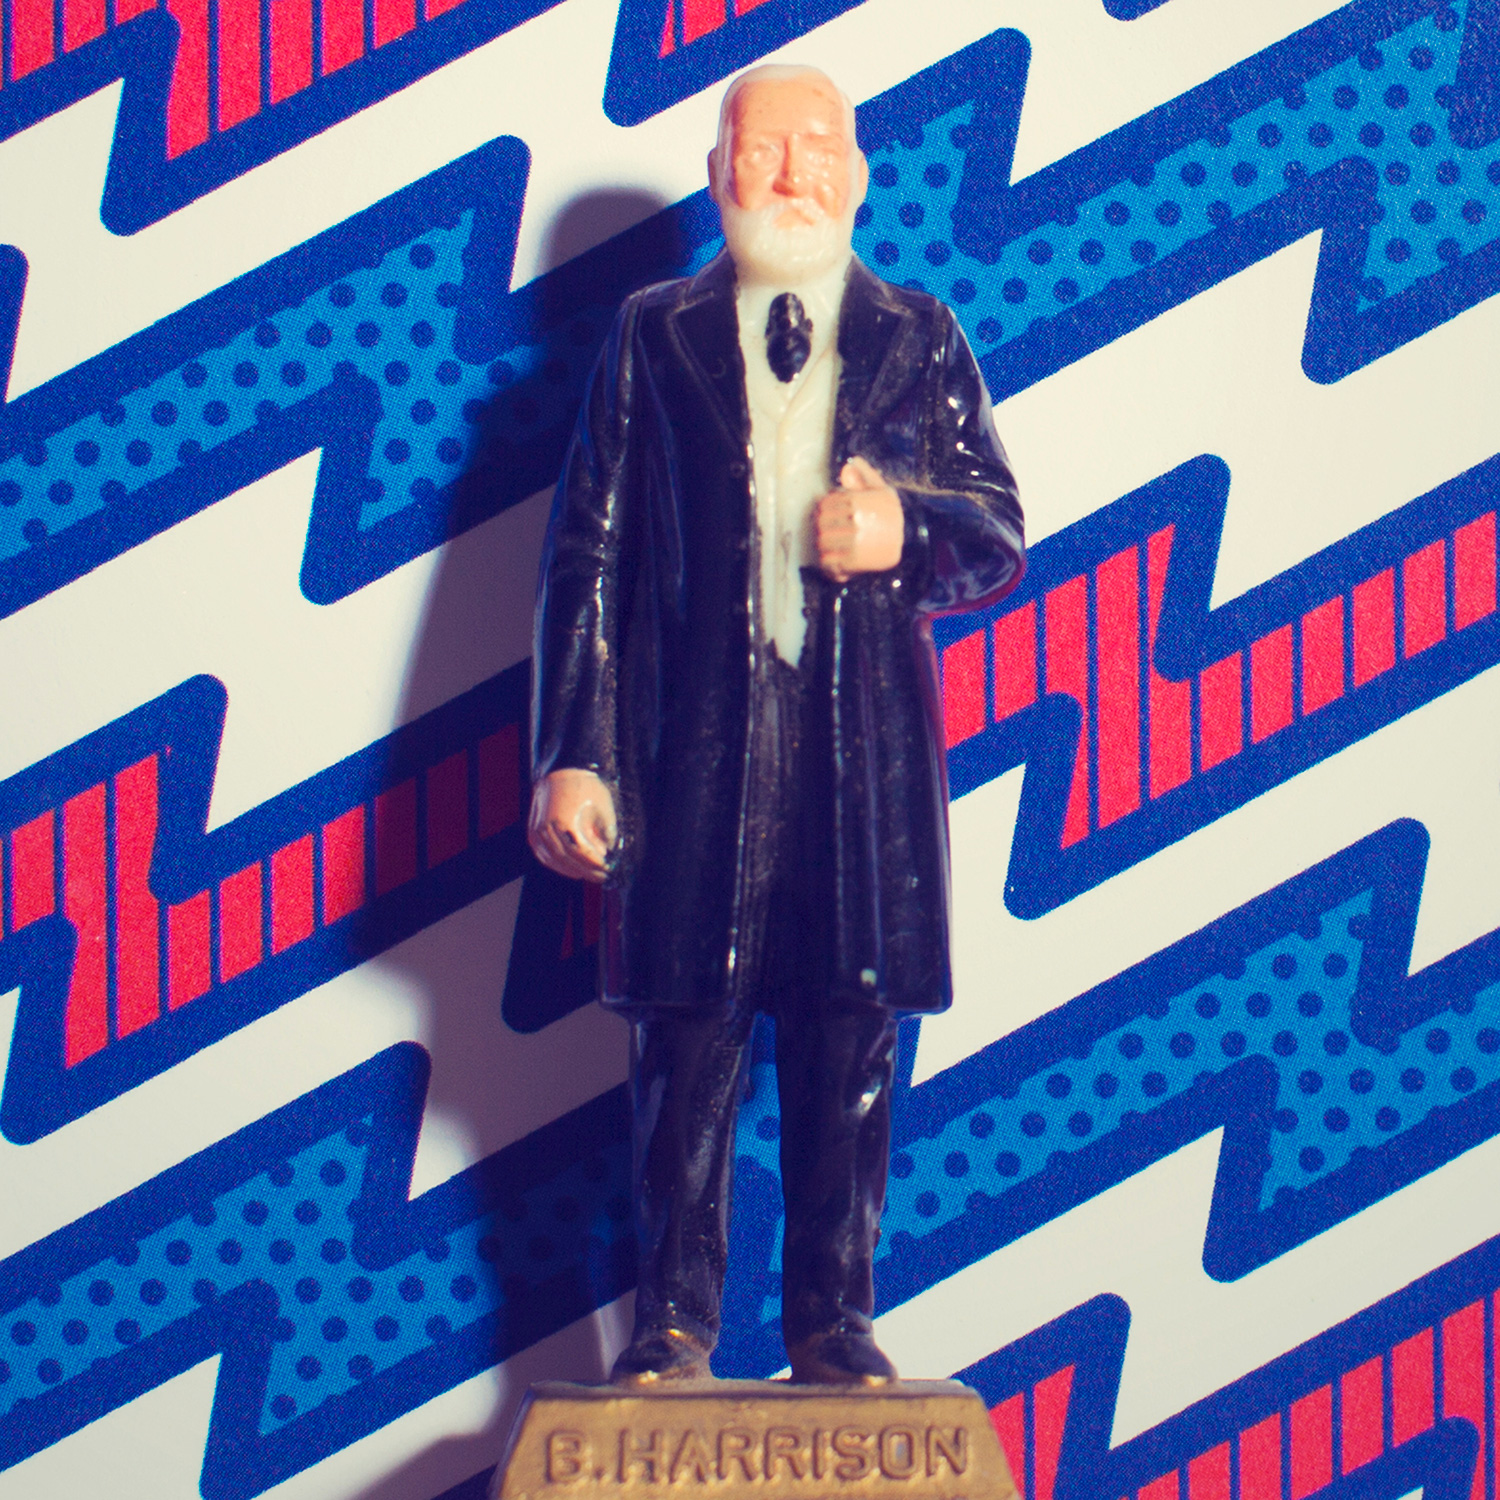 Benjamin Harrison: The president as conservationist